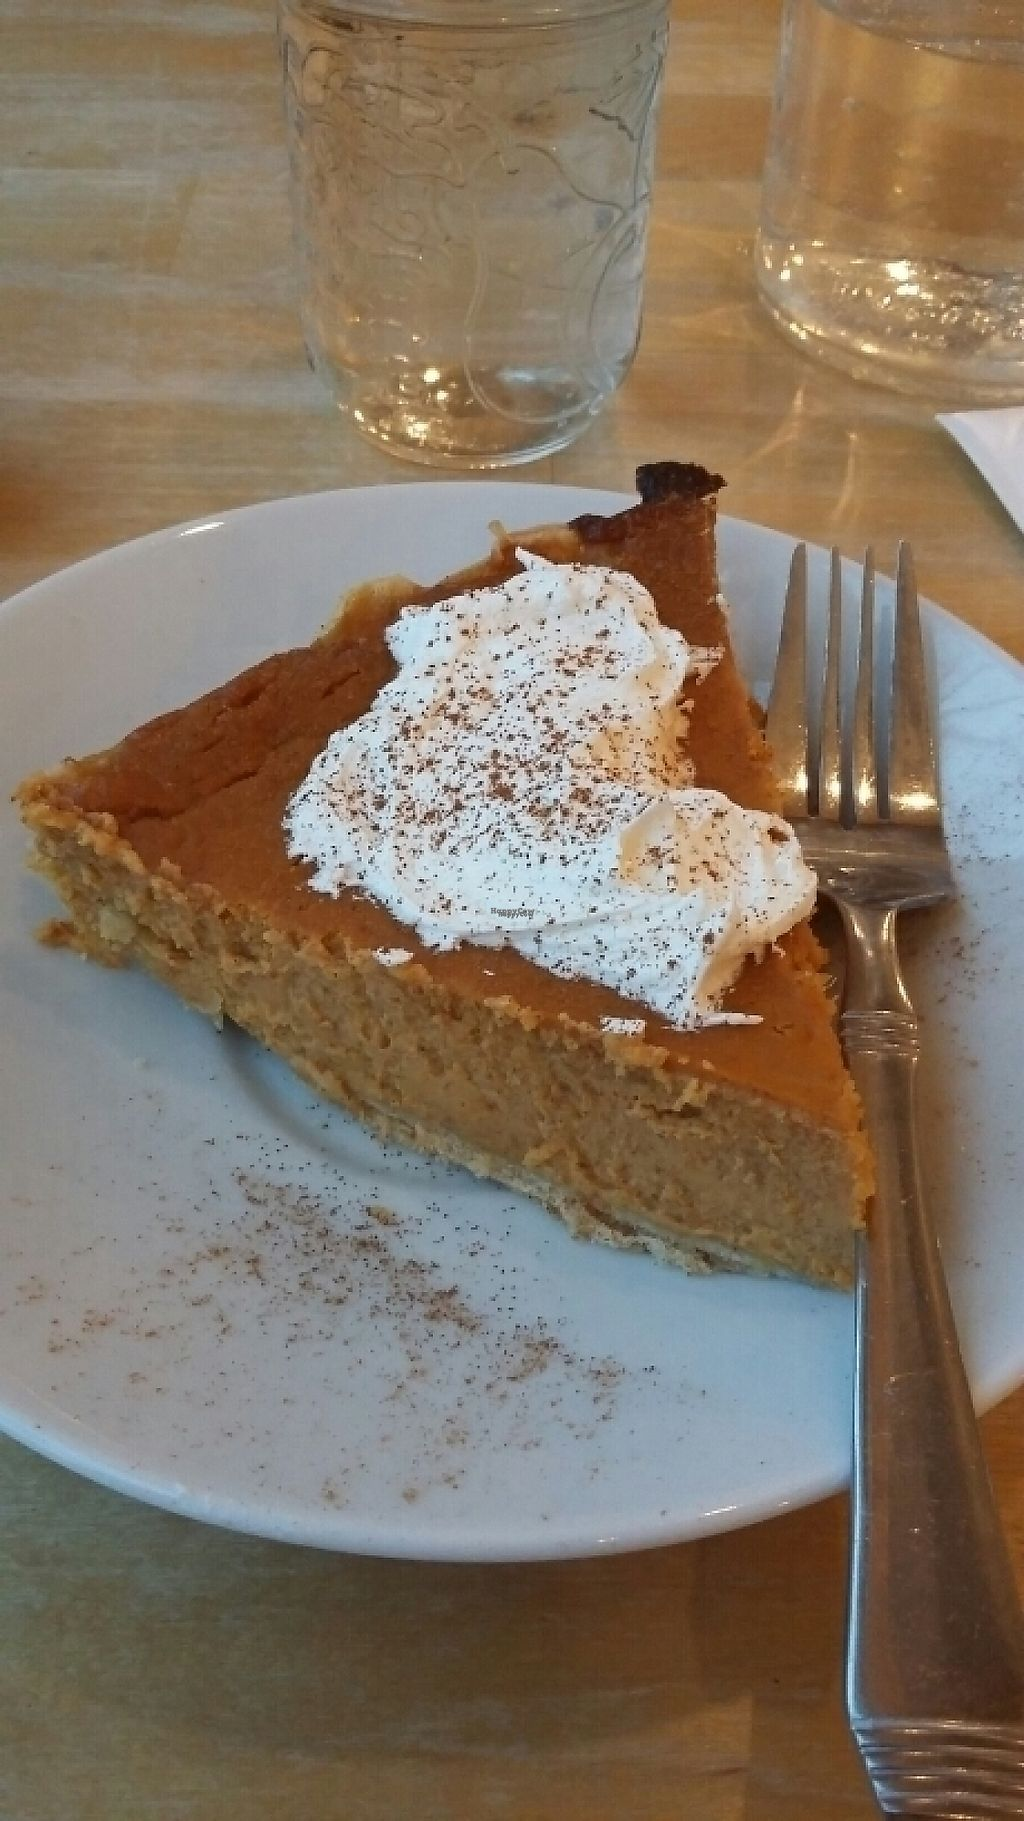 "Photo of Cafe Mosaics  by <a href=""/members/profile/WanderingWomble"">WanderingWomble</a> <br/>vegan pumpkin pie! <br/> February 6, 2017  - <a href='/contact/abuse/image/2822/223691'>Report</a>"